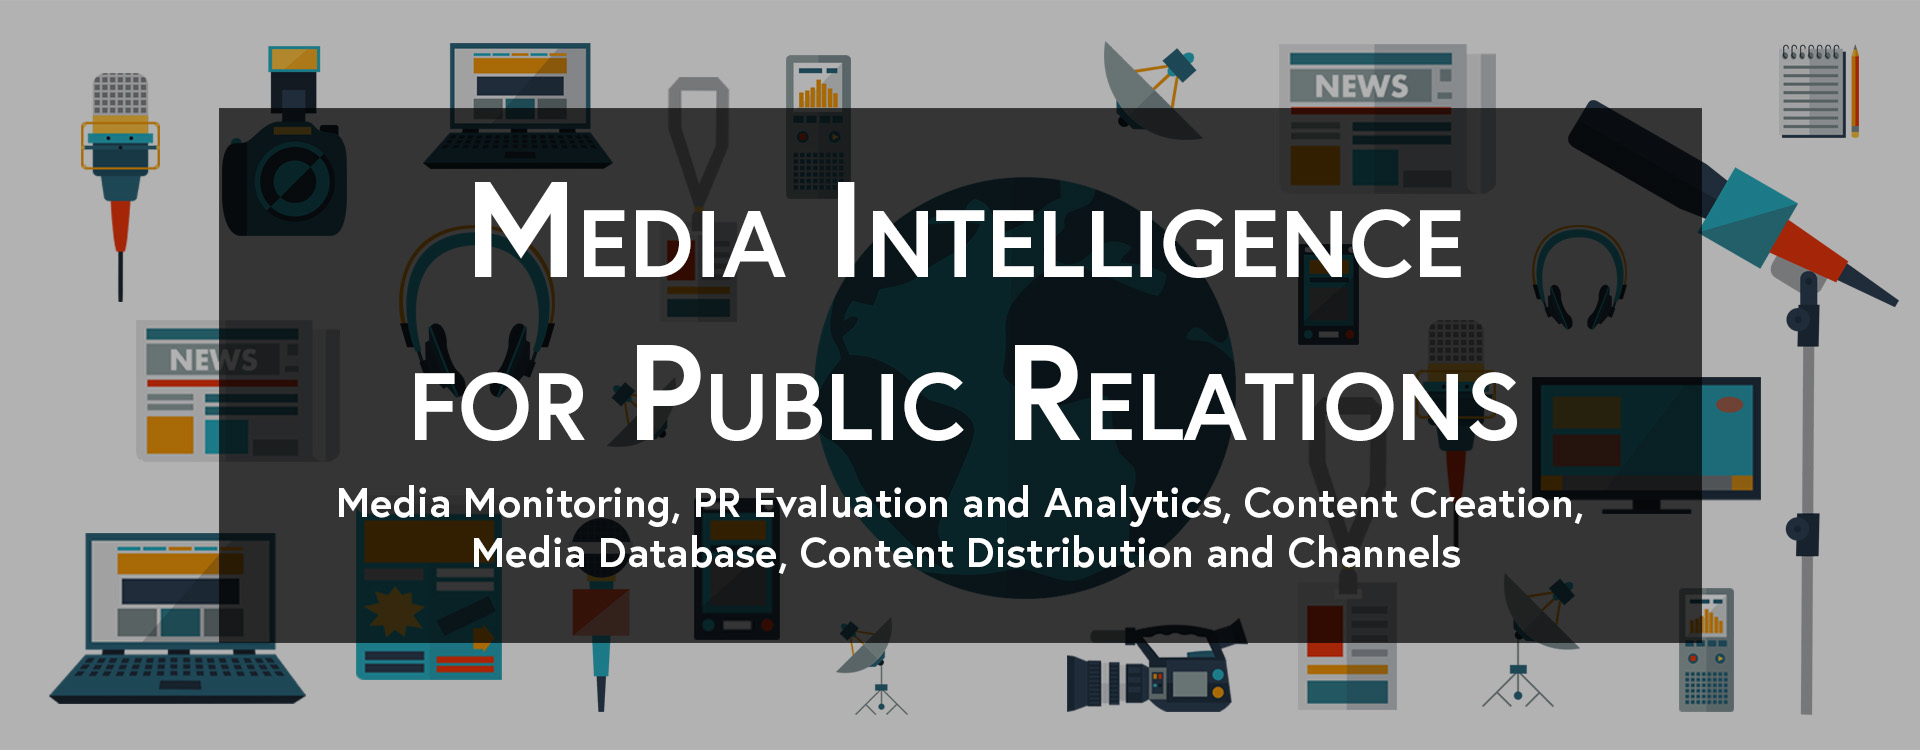 Media Intelligence For Public Relations